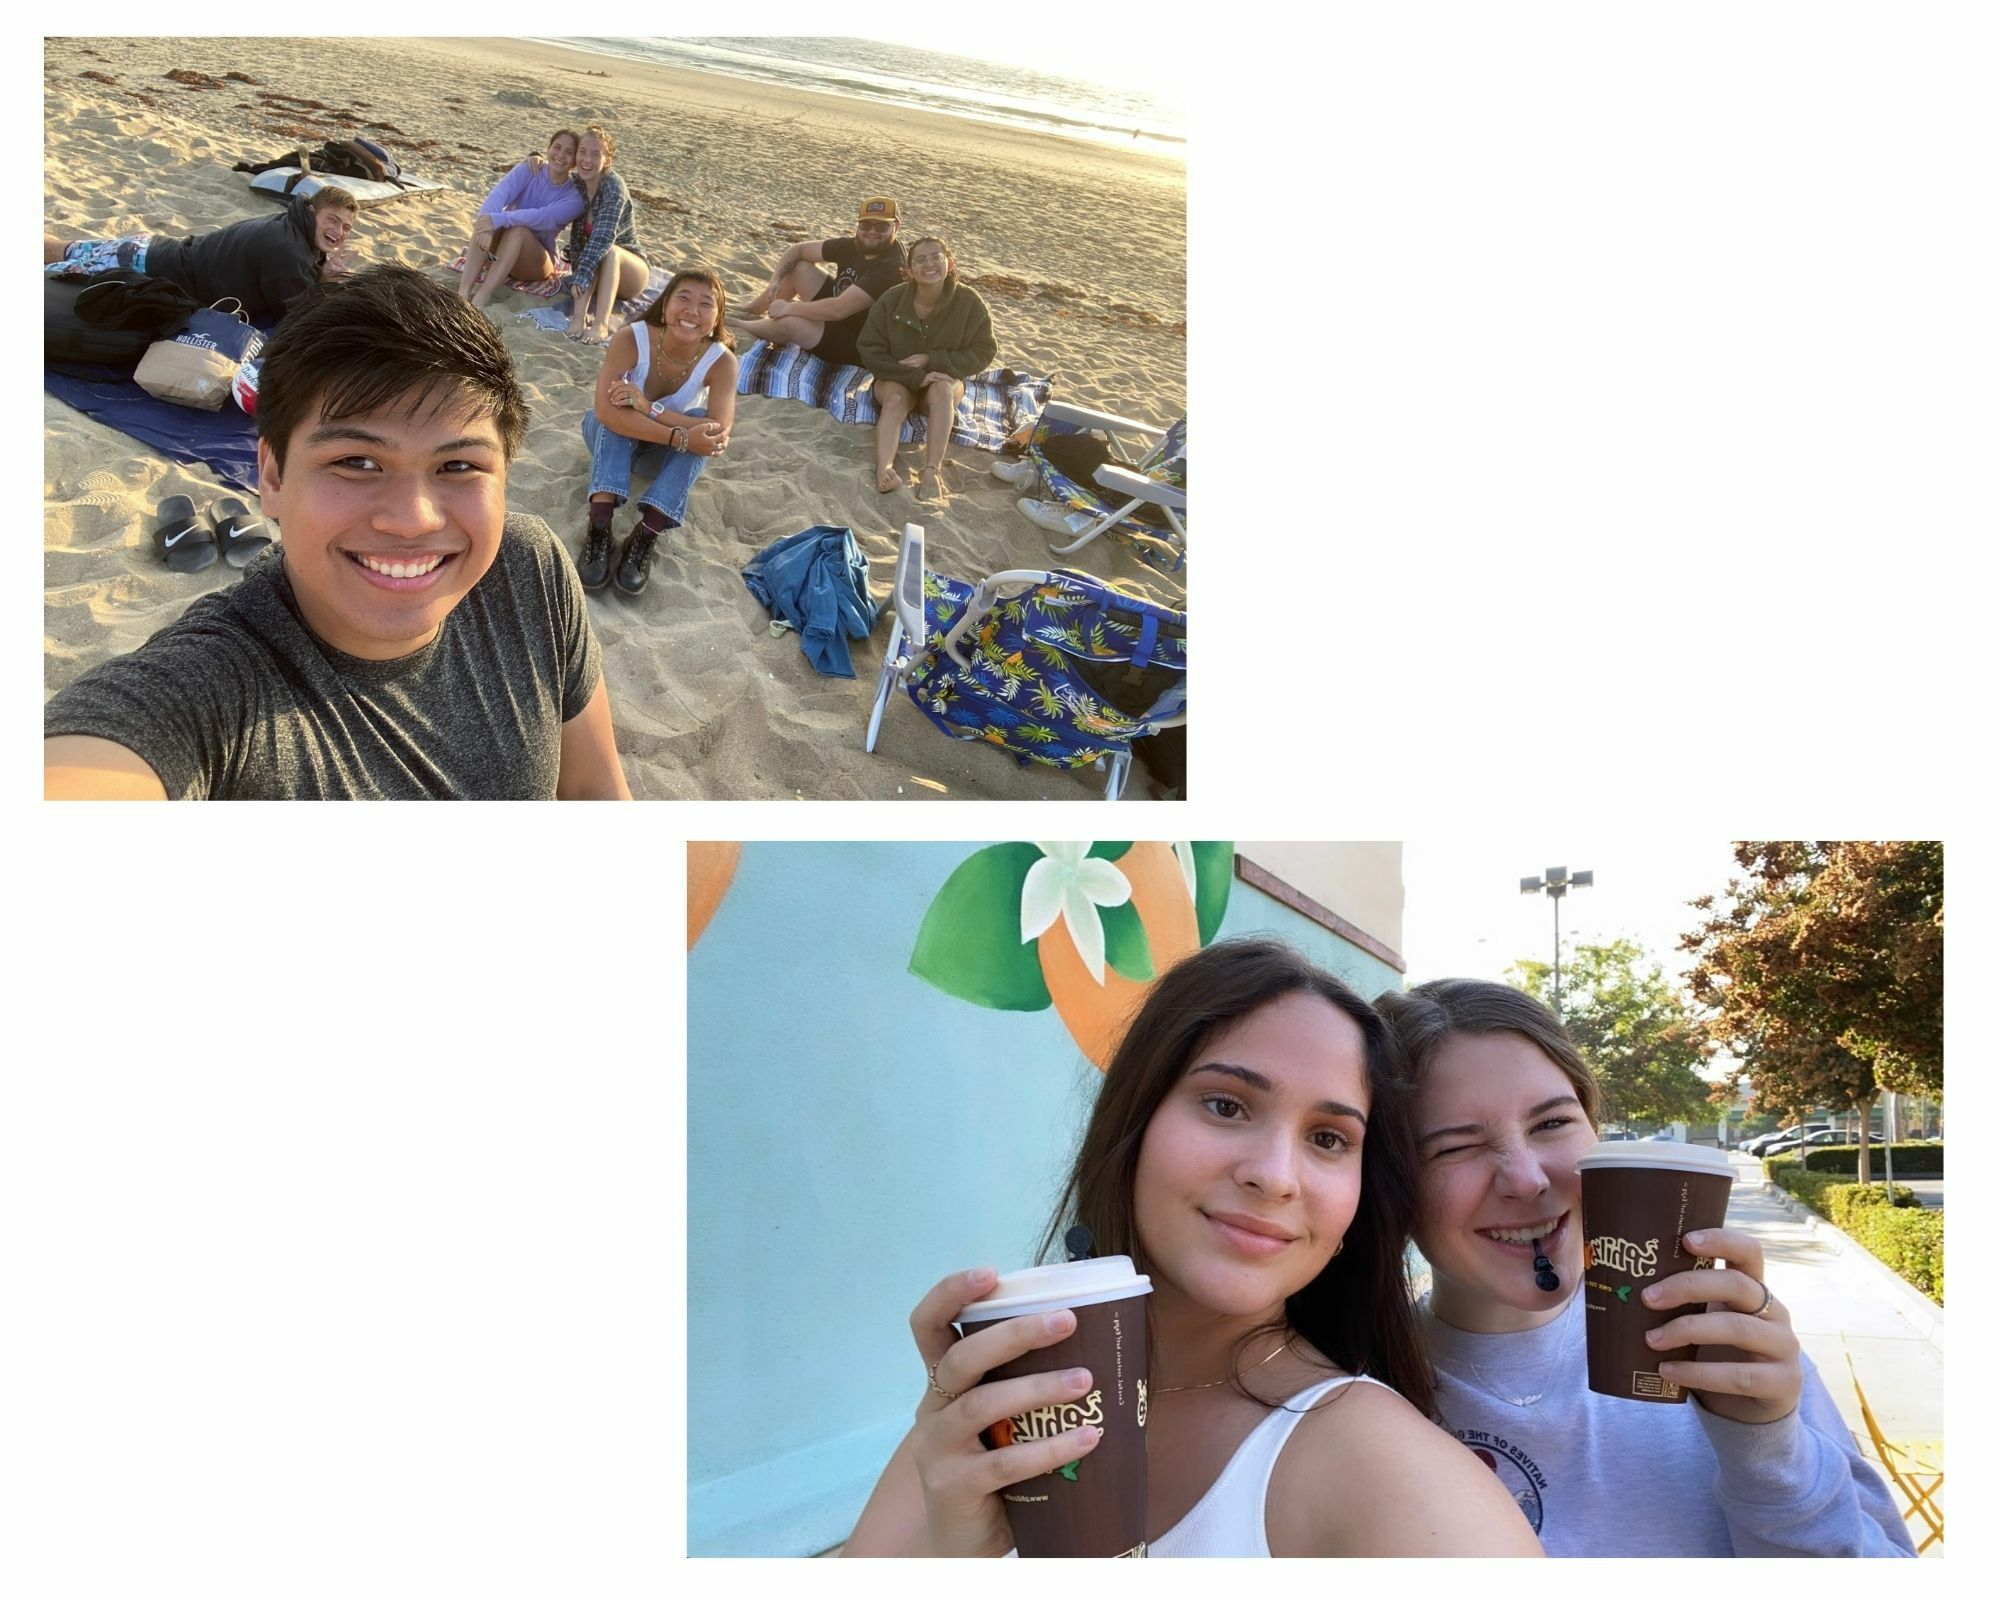 Two photos in one: Maggie and friend drinking Philz' Coffee, and then Maggie and a collection of Ambassadors at the beach